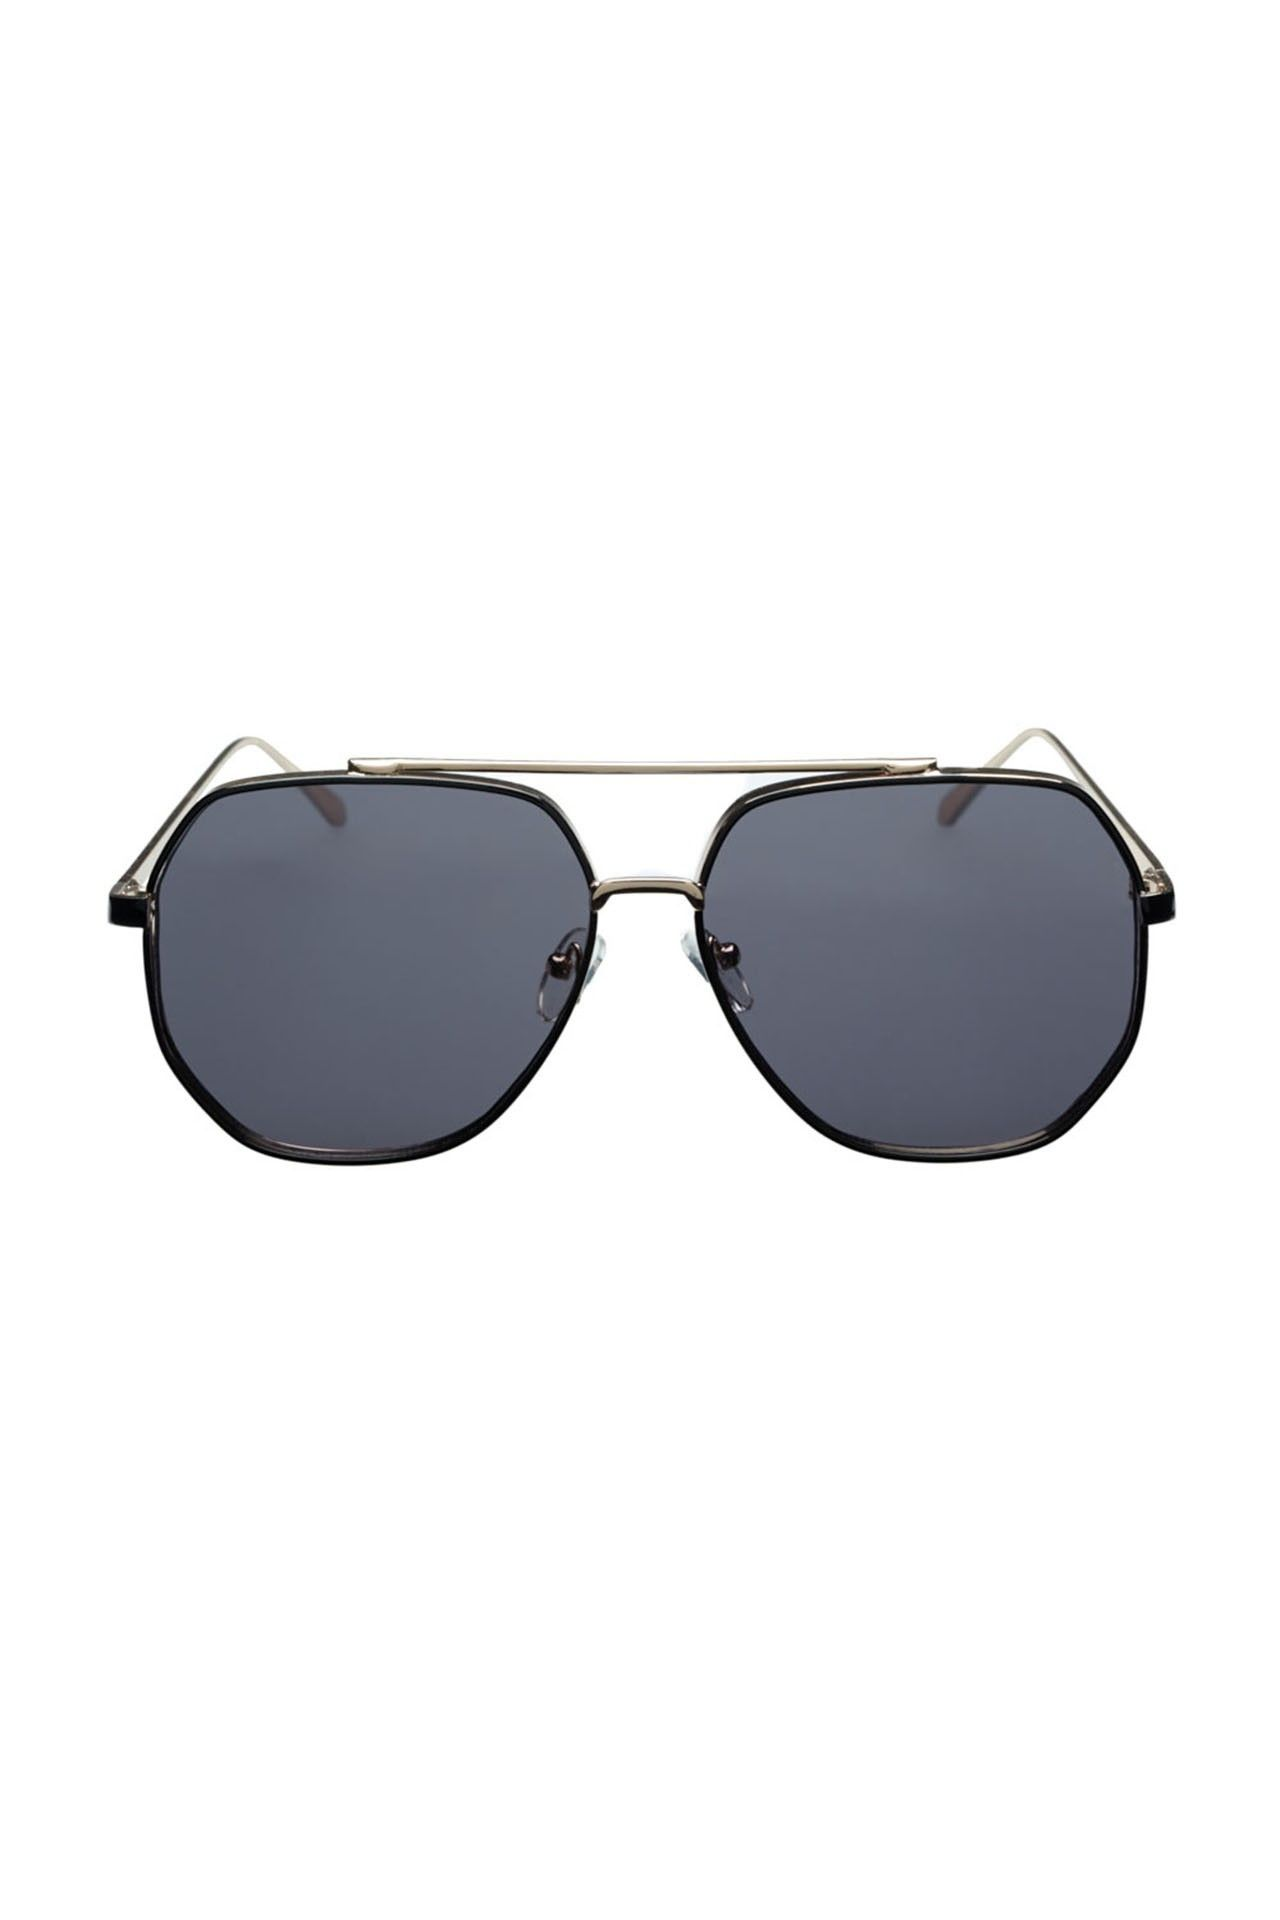 Afbeelding van Icon Eyewear Zonnebril M180726 Gold With Black A